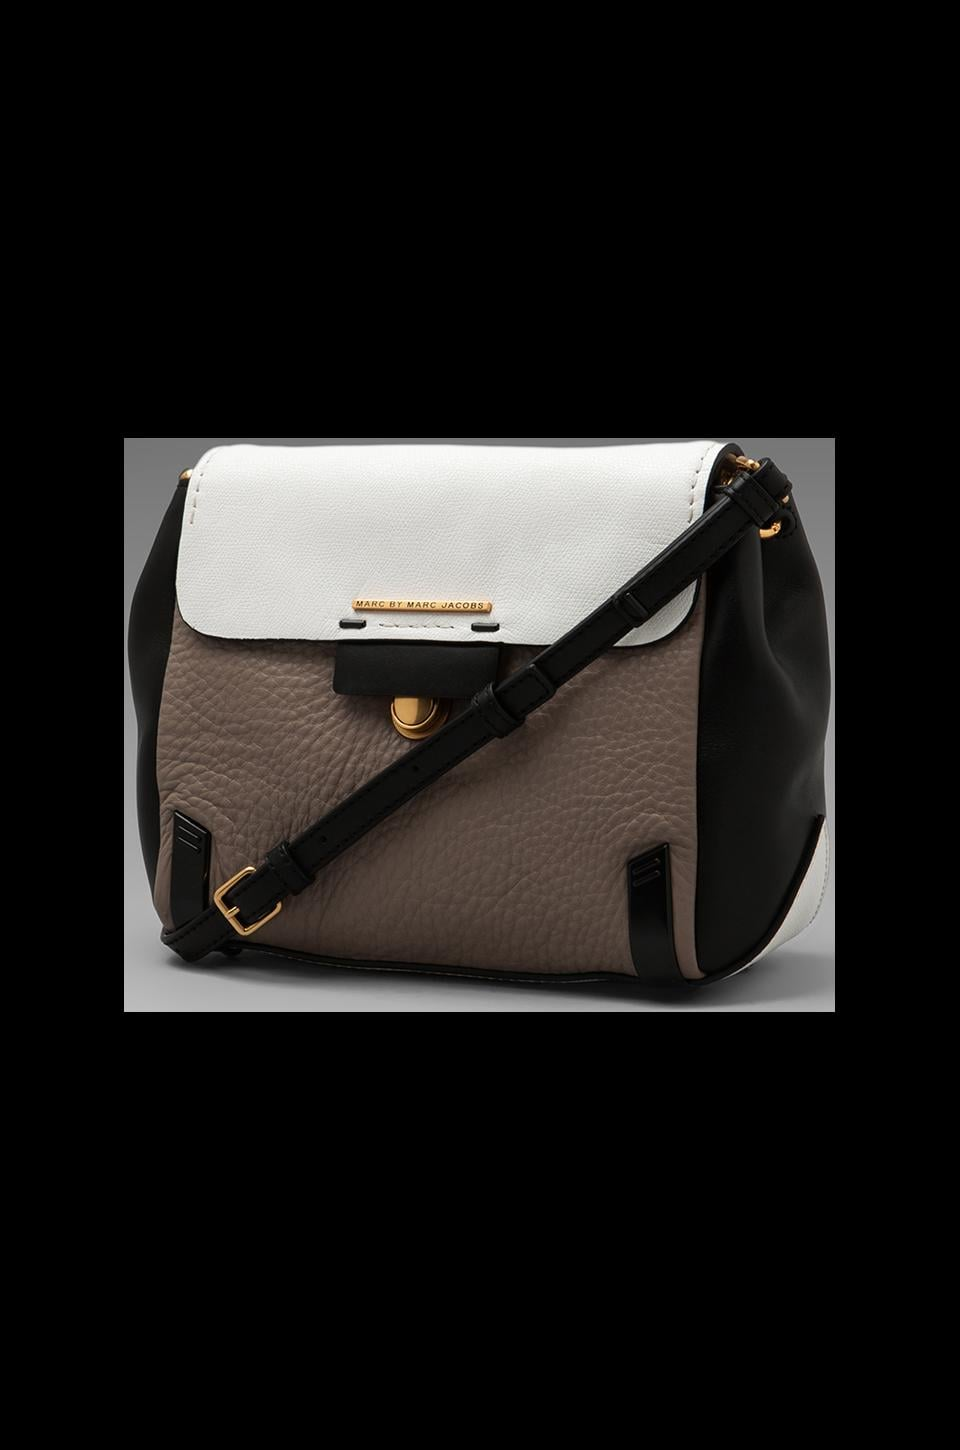 Marc by Marc Jacobs Sheltered Island Colorblocked Crossbody in Star White Multi